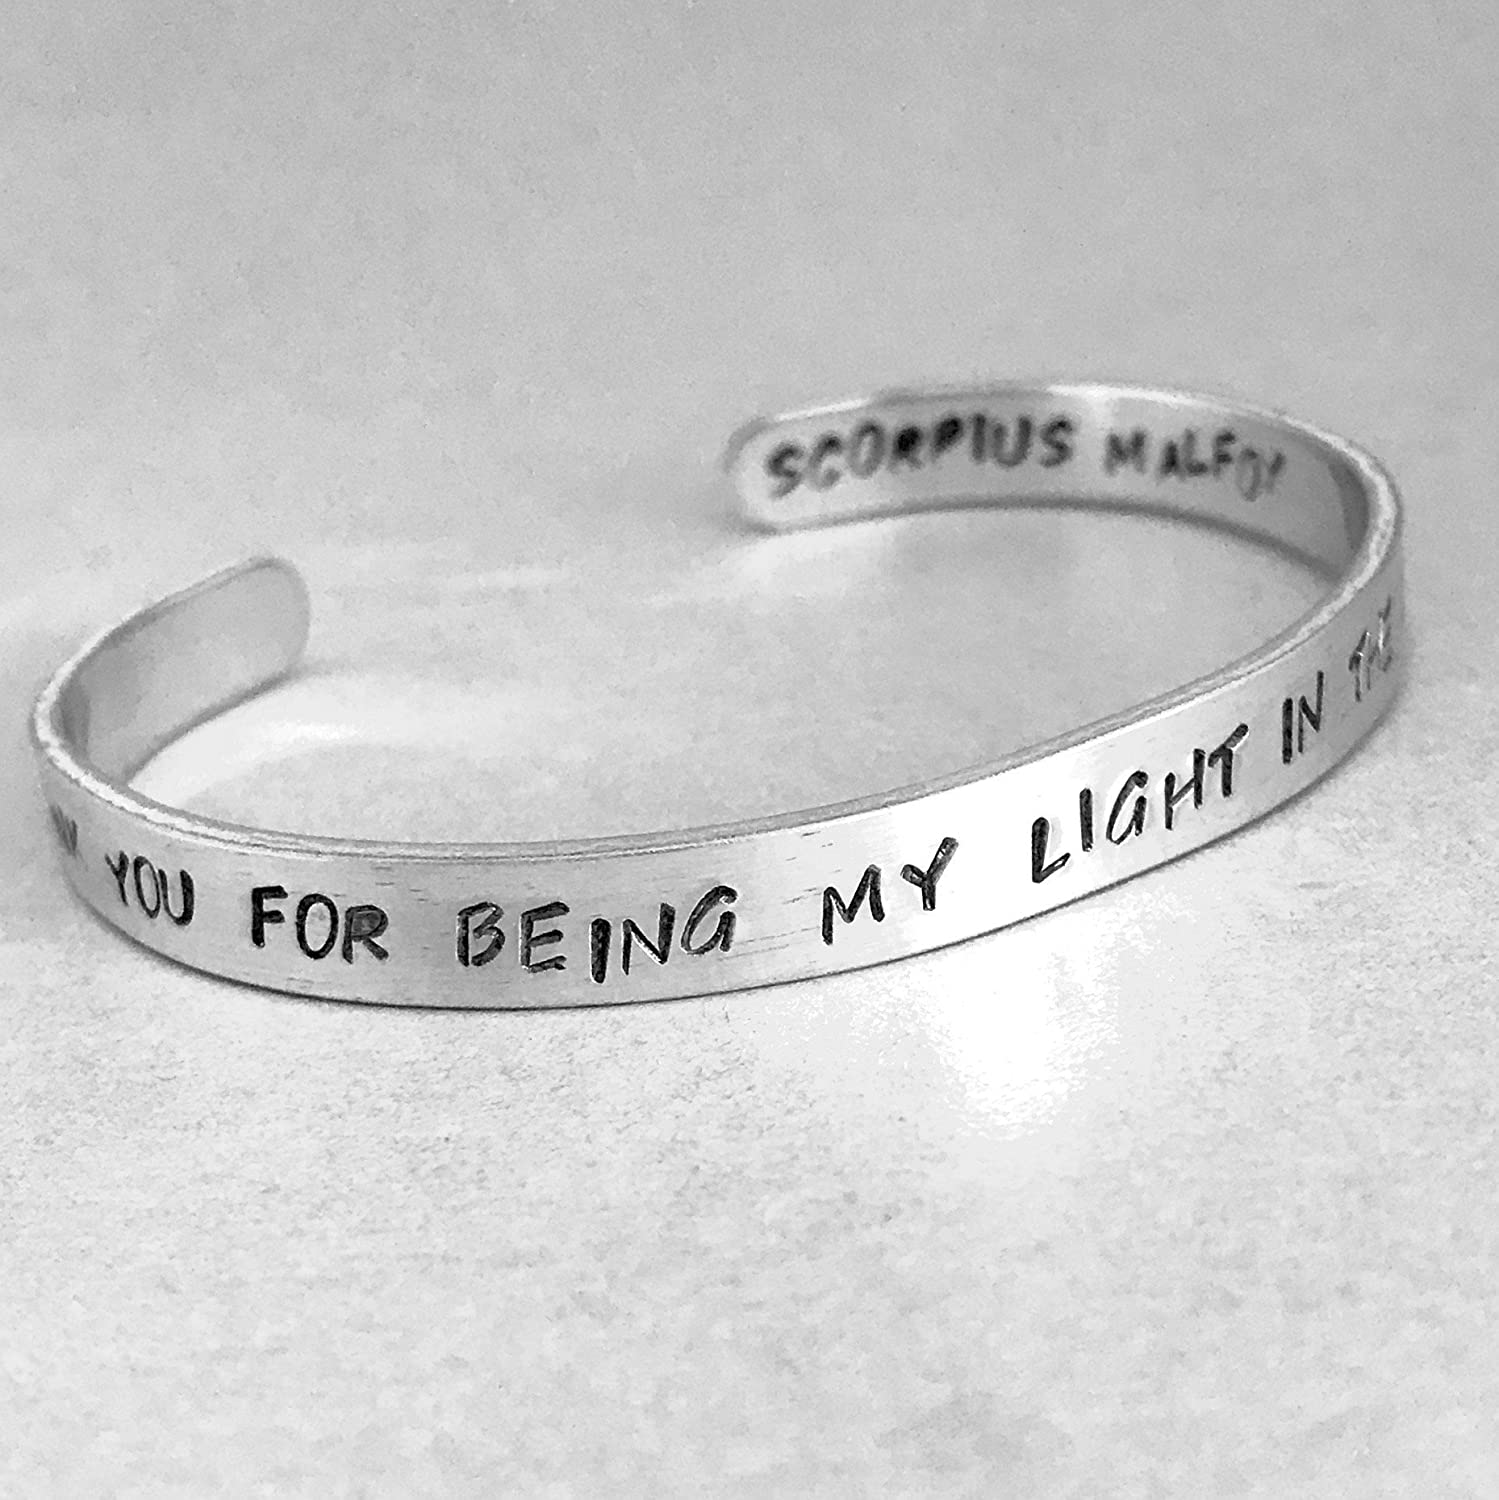 Harry Potter Cursed Child Bracelet - Thank You For Being My Light In the Darkness - Scorpius Malfoy